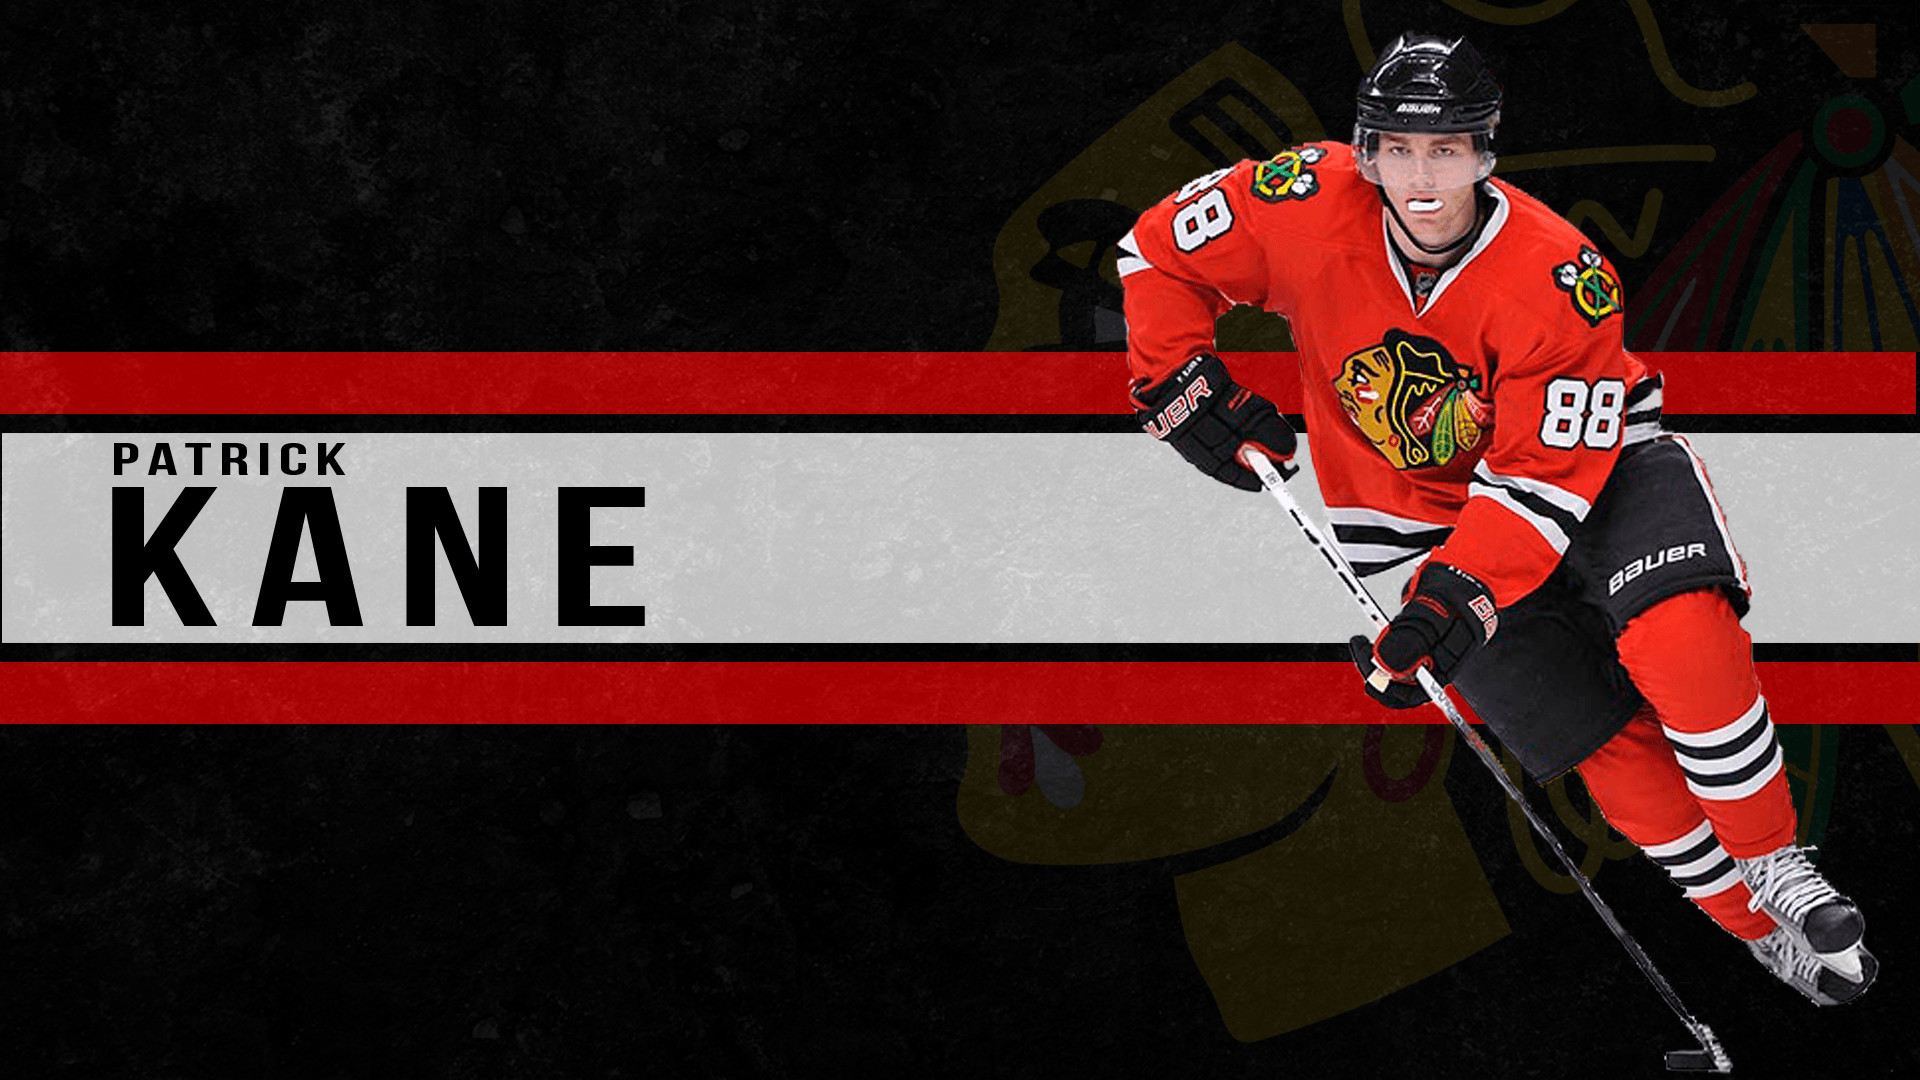 Patrick Kane Wallpapers Images Photos Pictures Backgrounds